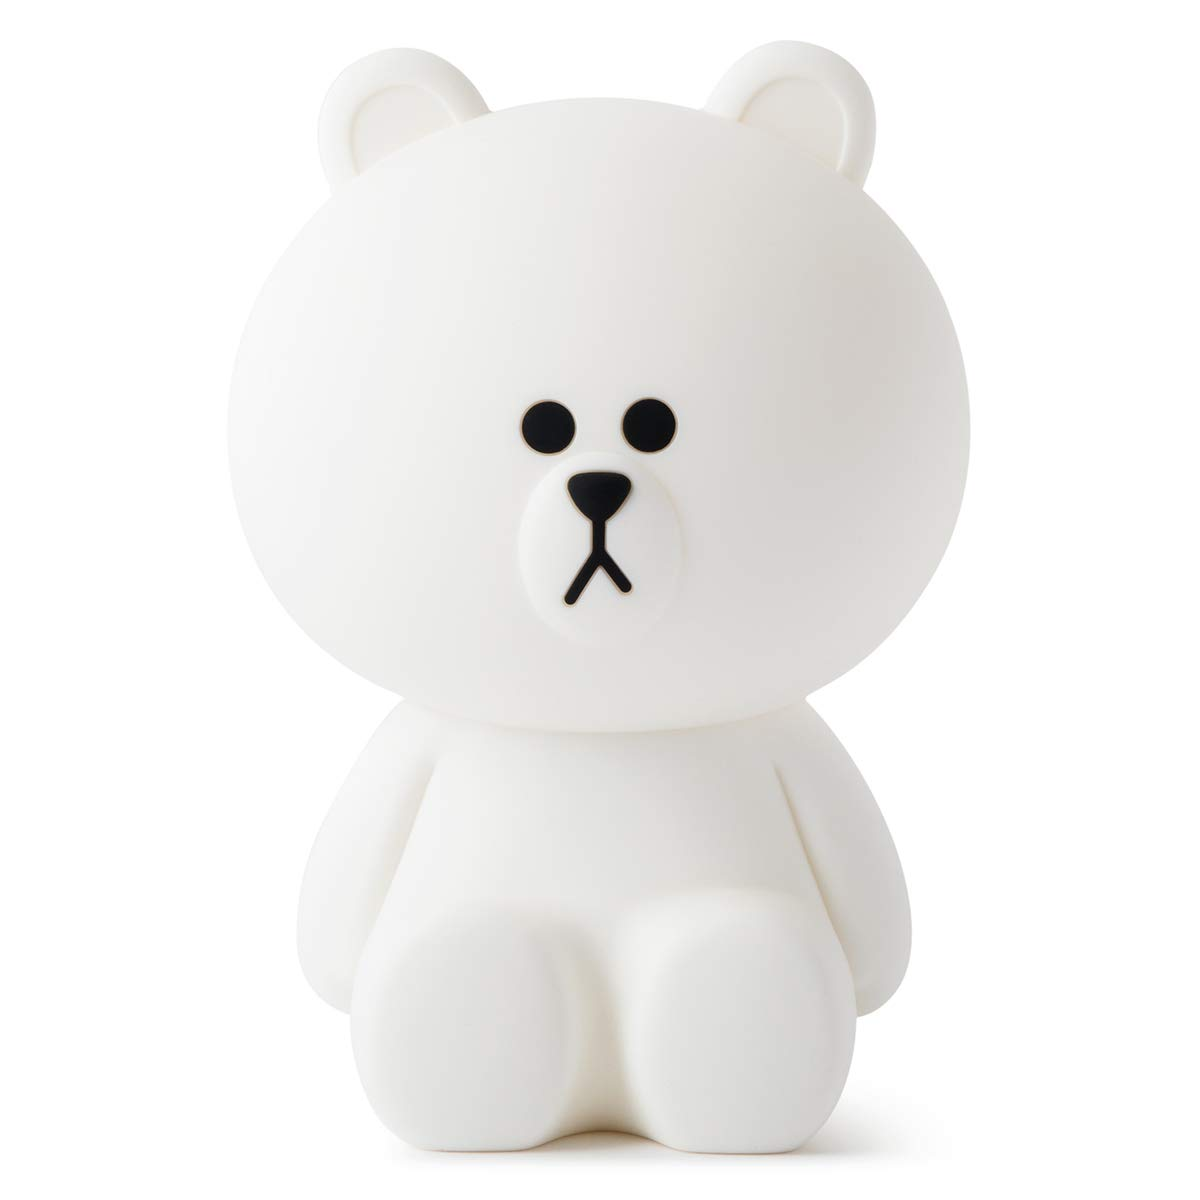 Line Friends Cute Remote Lamp - Brown Character Bedside Night Mood Light Desk Accessory